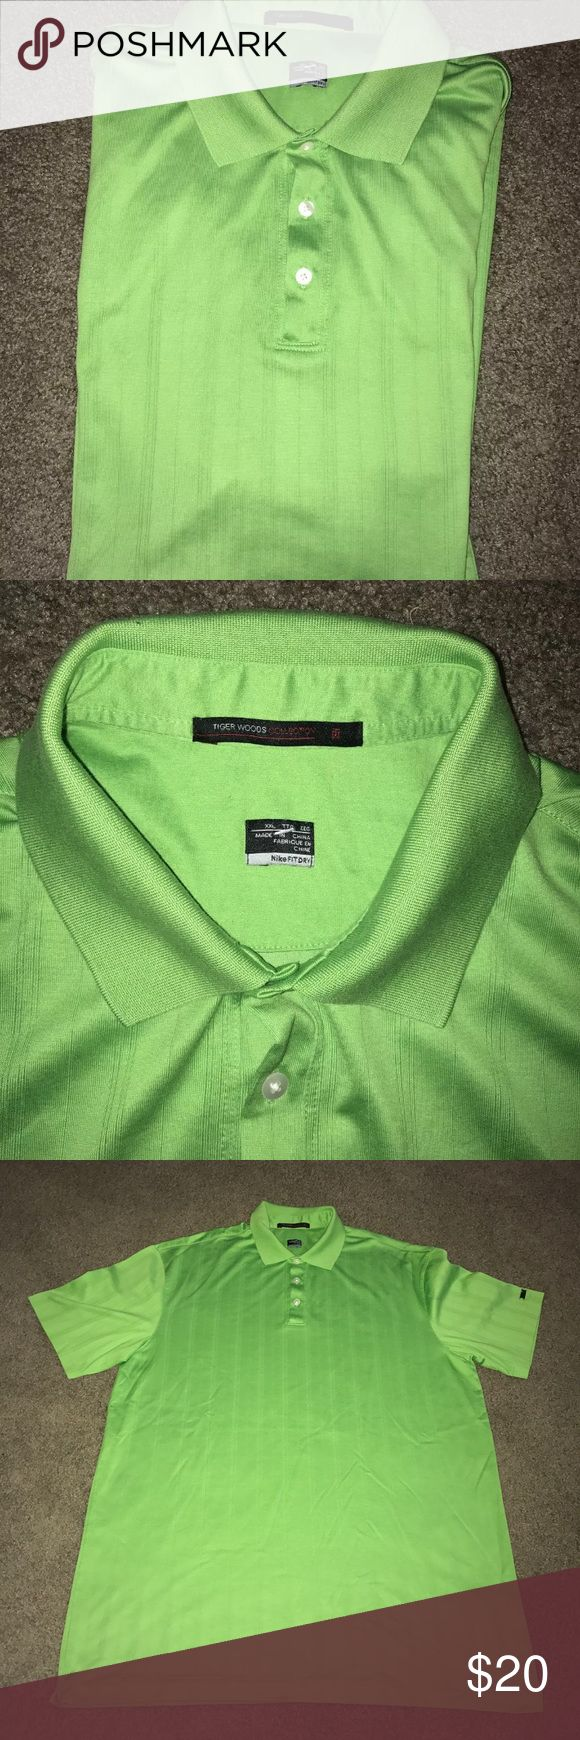 Tiger woods Nike XXL green polo shirt In excellent condition Nike Shirts Polos